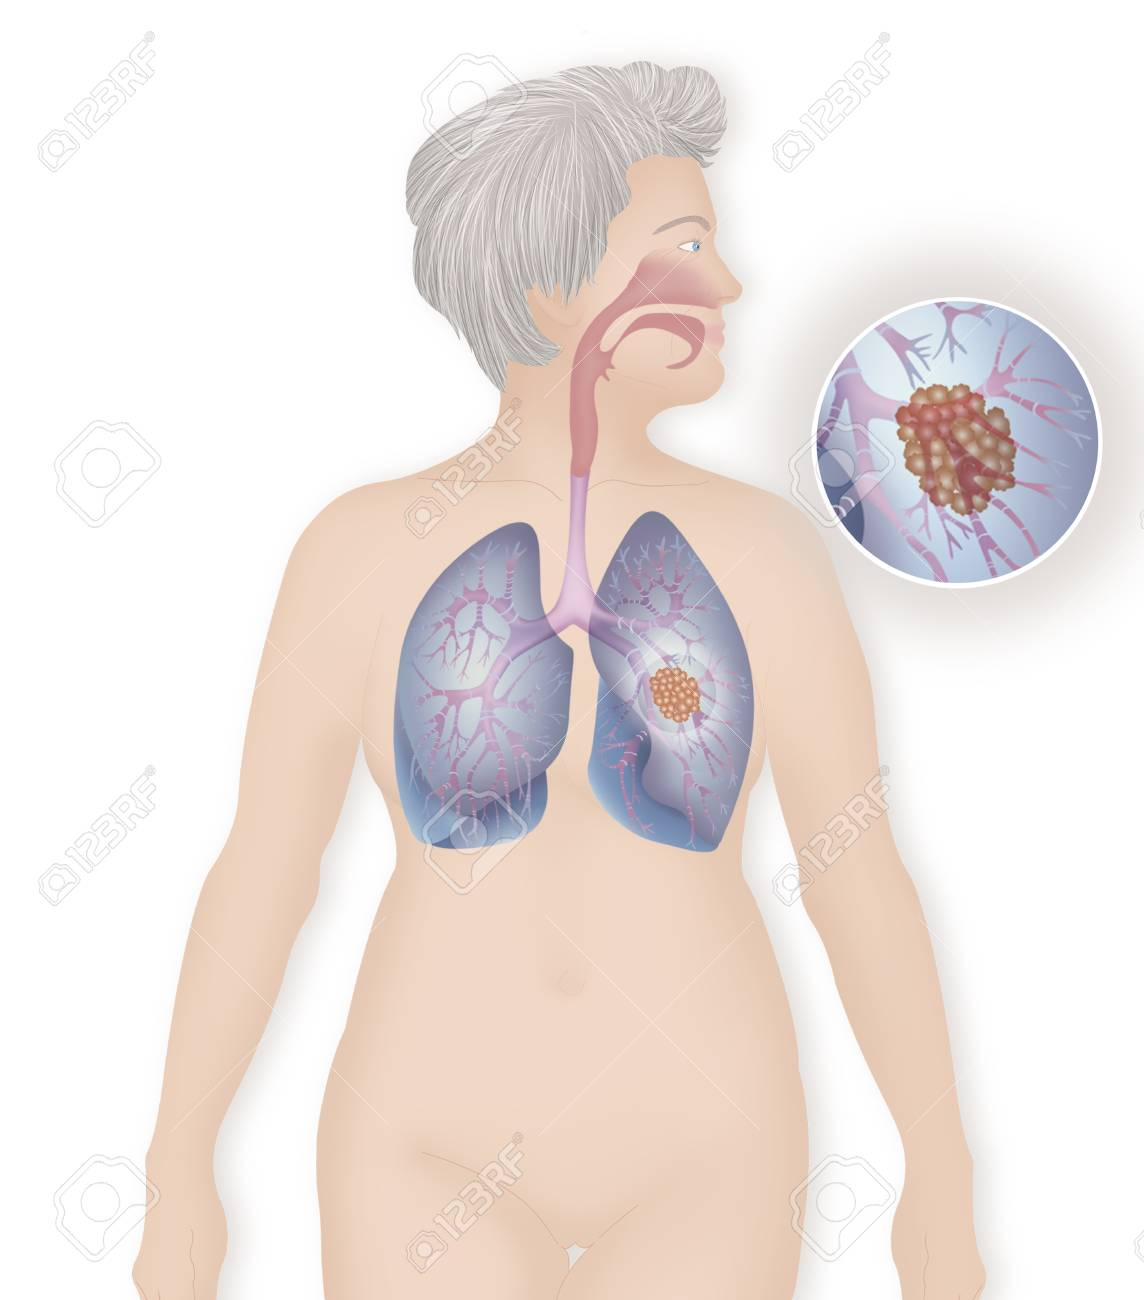 Lung Cancer,Drawing Stock Photo, Picture And Royalty Free Image ...